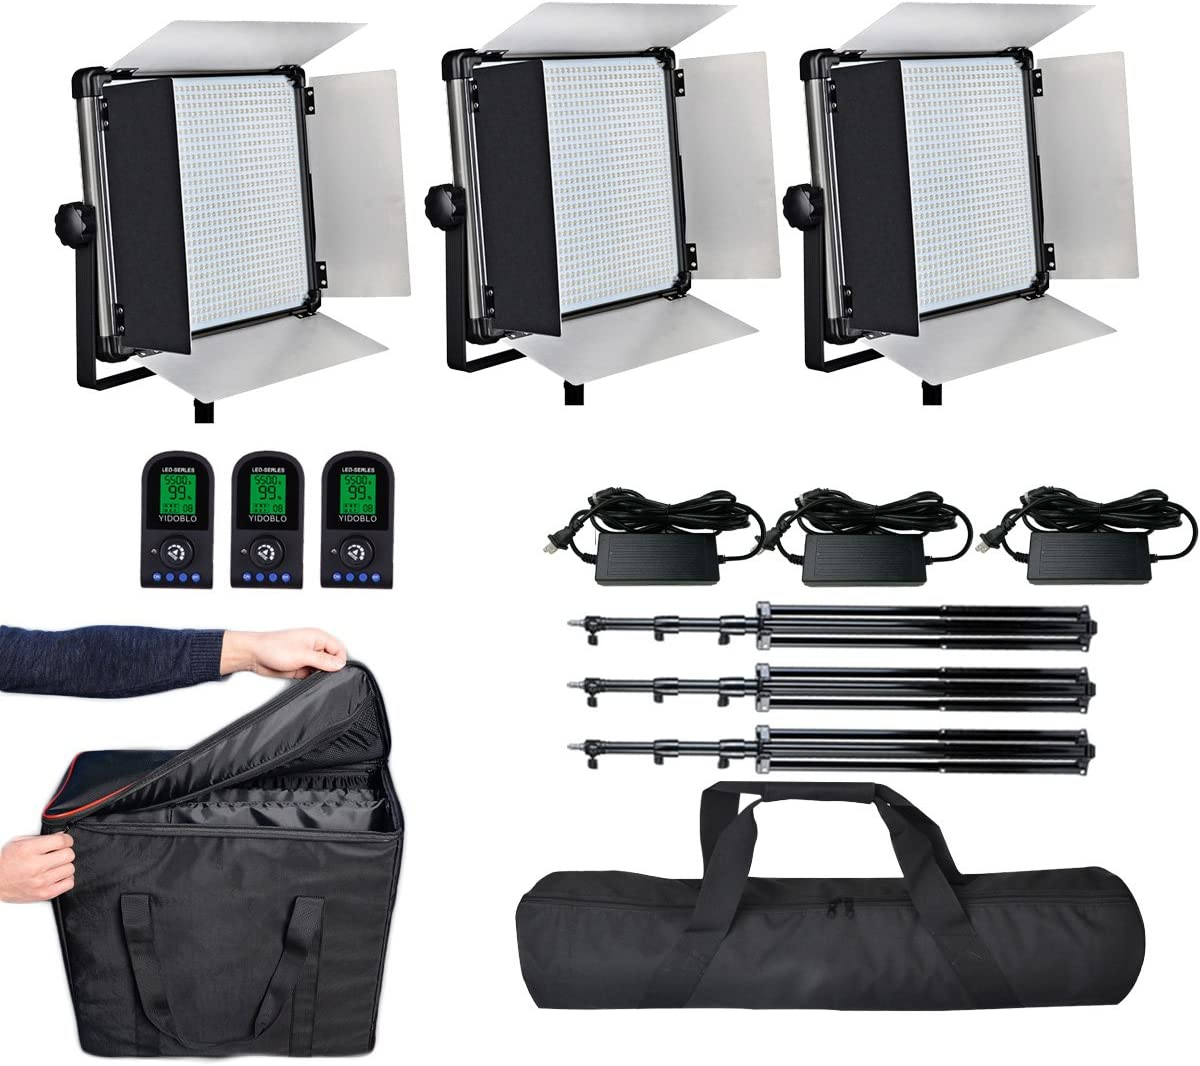 Remote Controls and Carrying Bags 9 feet//280cm Light Stands Yidobol 140W LED Photo Video Studio Film Lighting Panel Kit Including Daylight 140W Photography Lights E-2000